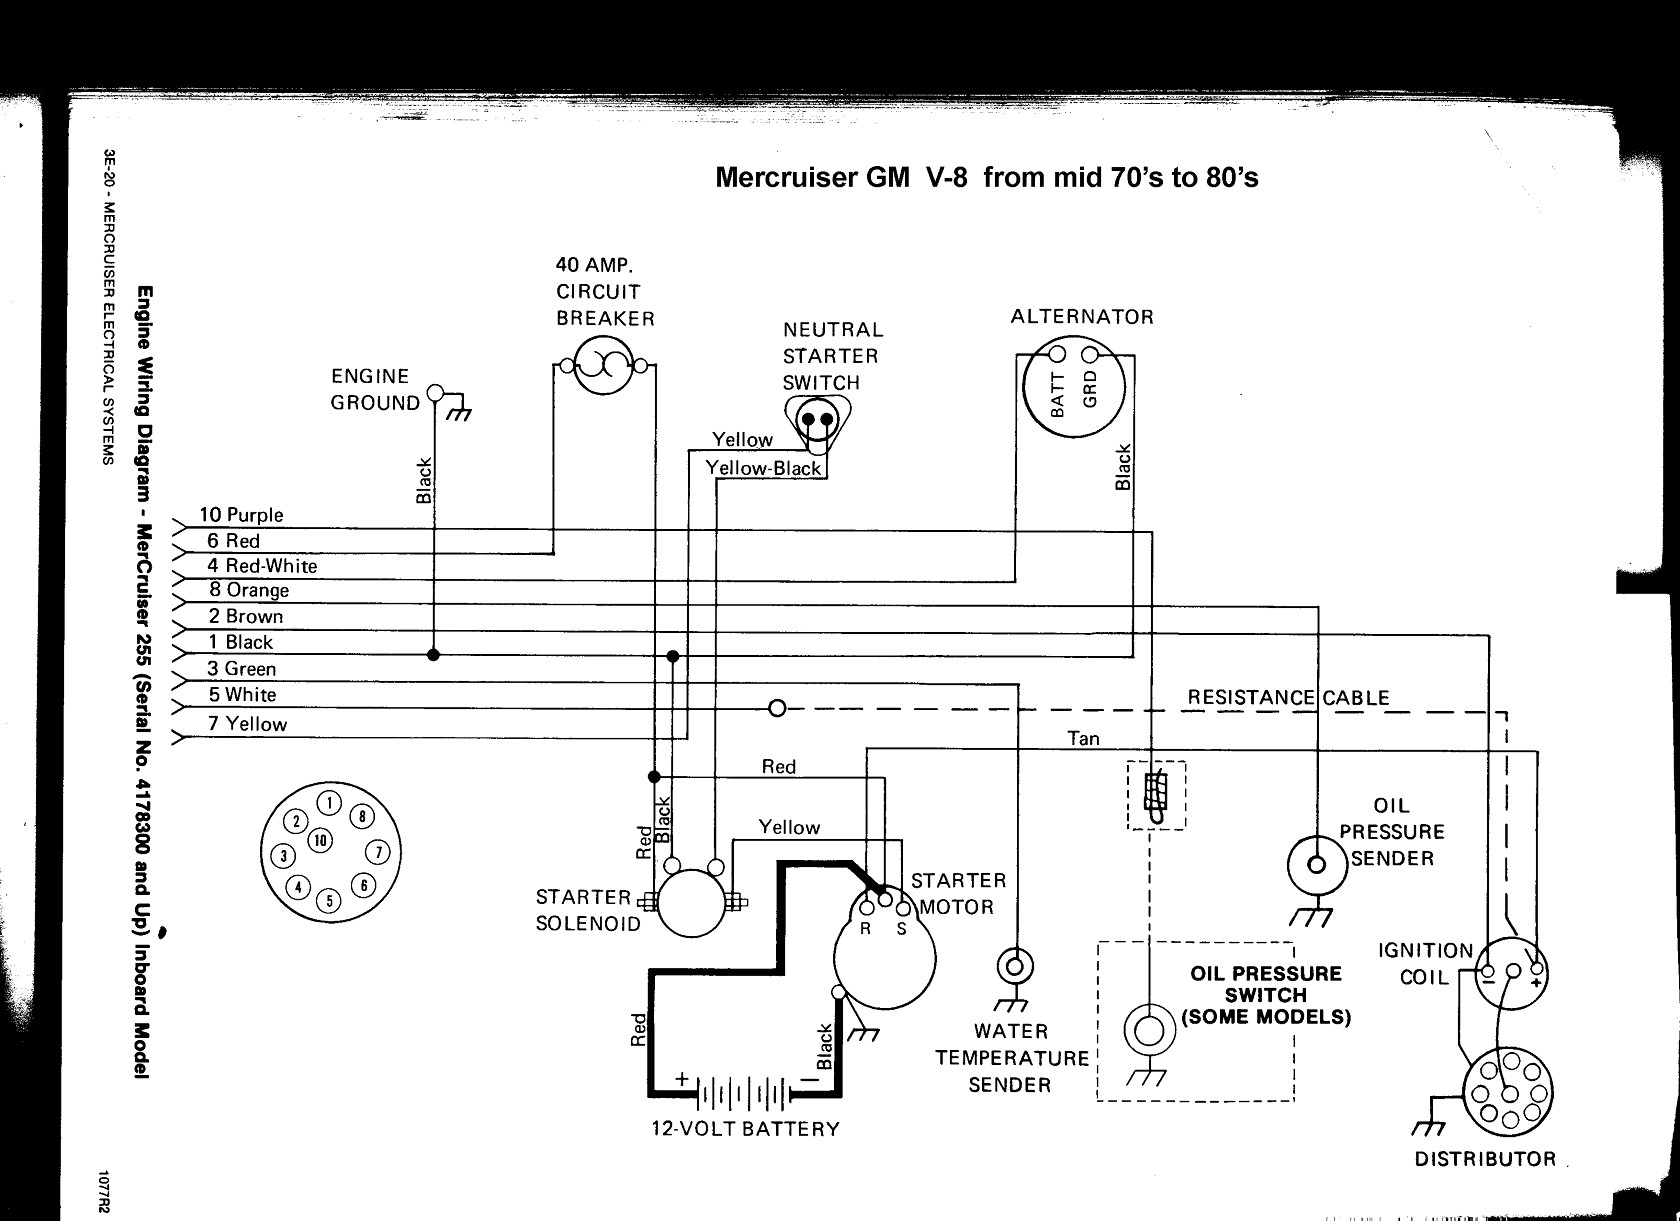 wiring 4 schematics mercruiser 4.3 wiring diagram | free wiring diagram